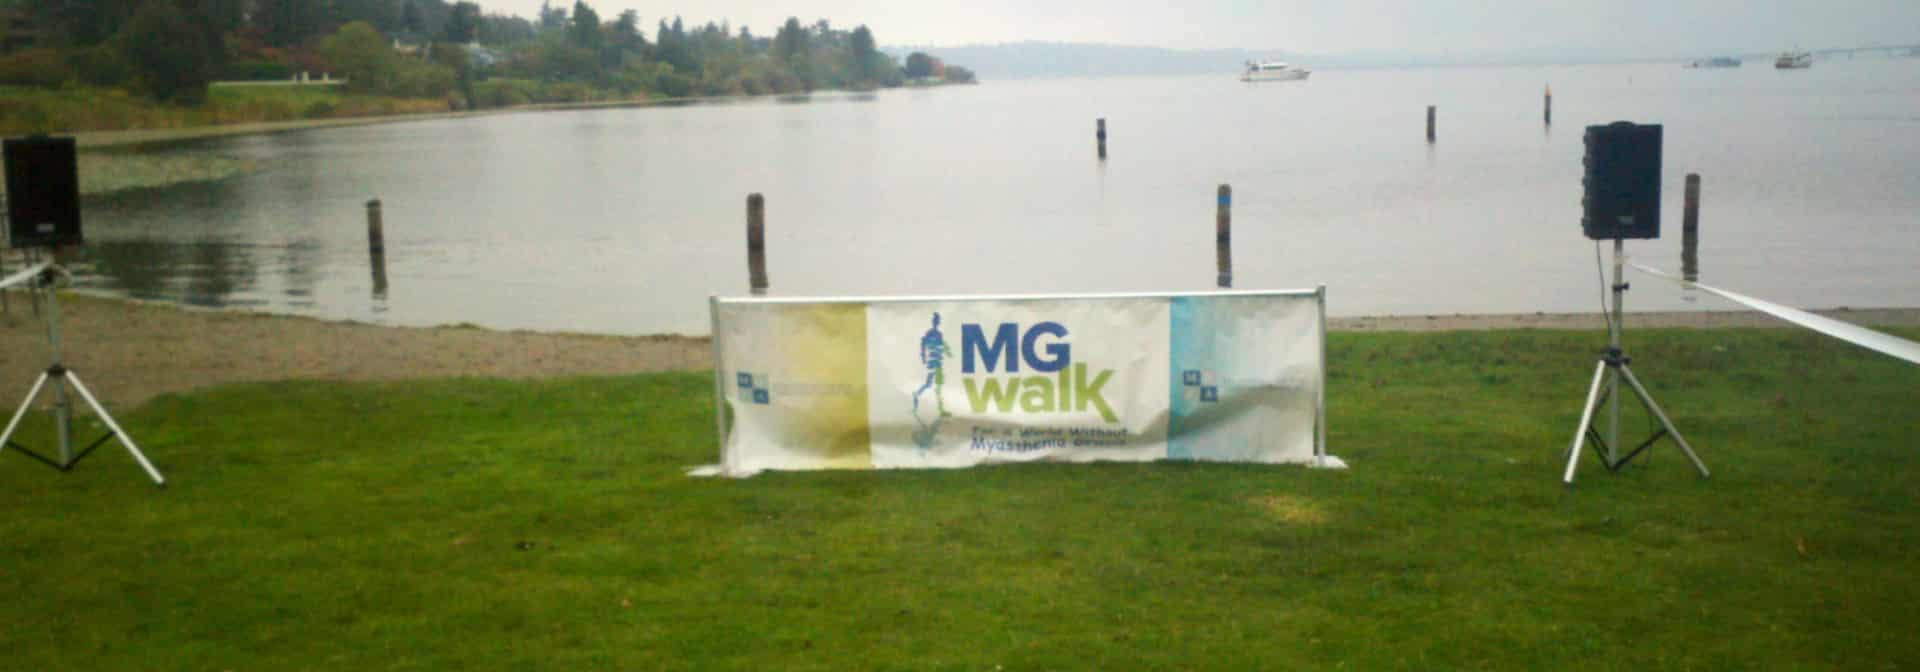 Seattle MG Walk 2014